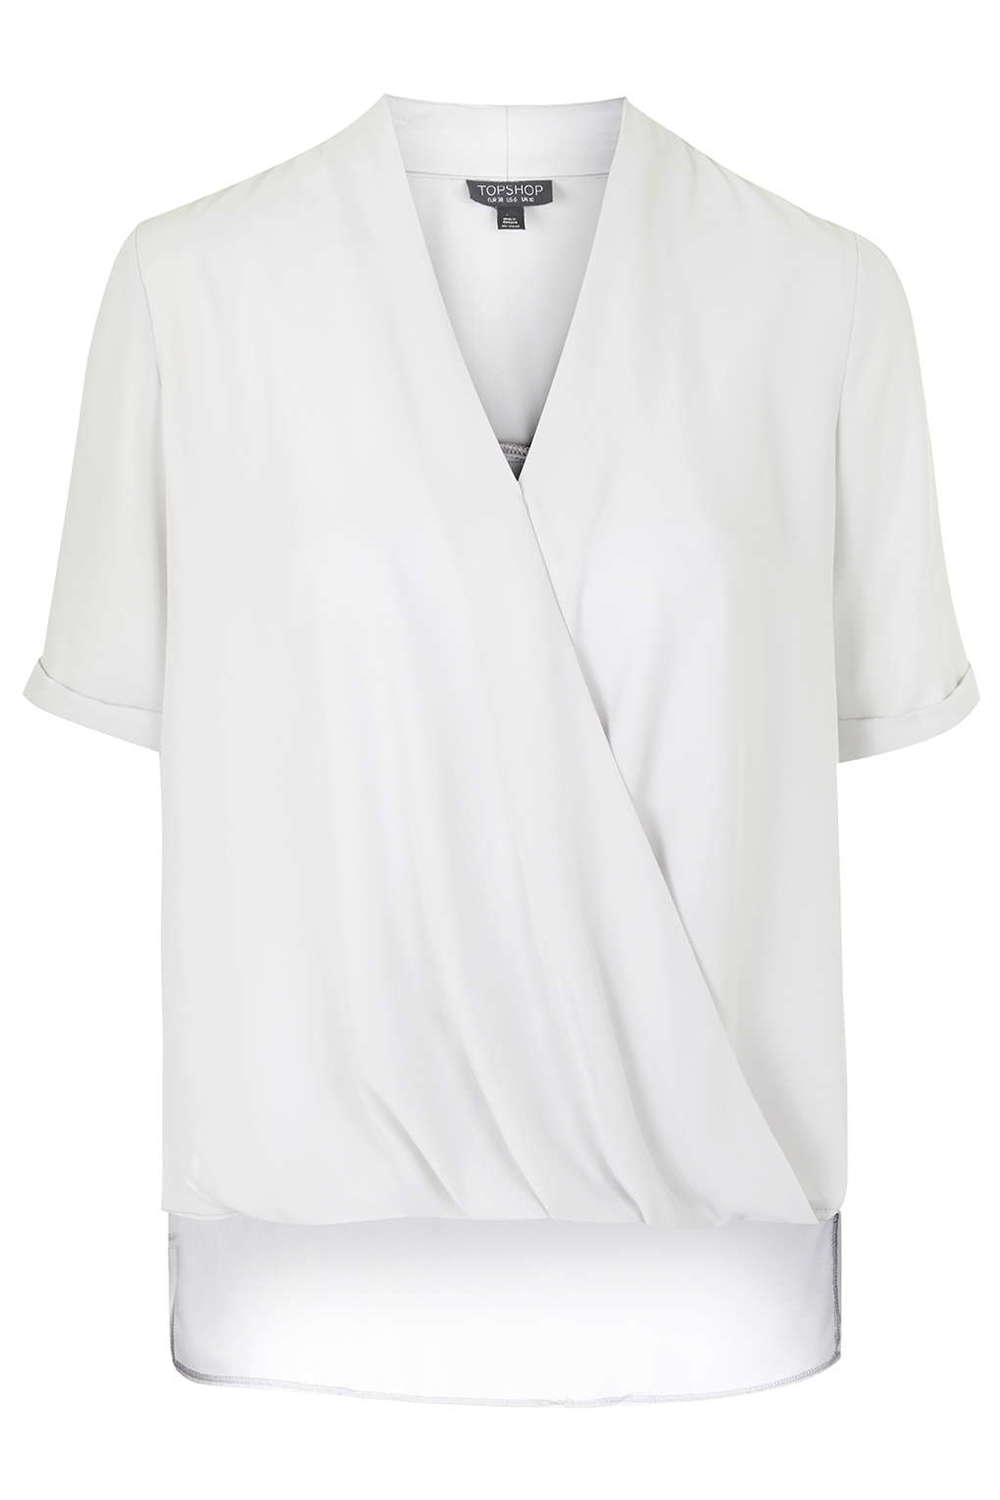 Light Grey Drape Sleeve Blouse. (Polyester) Topshop. $60.